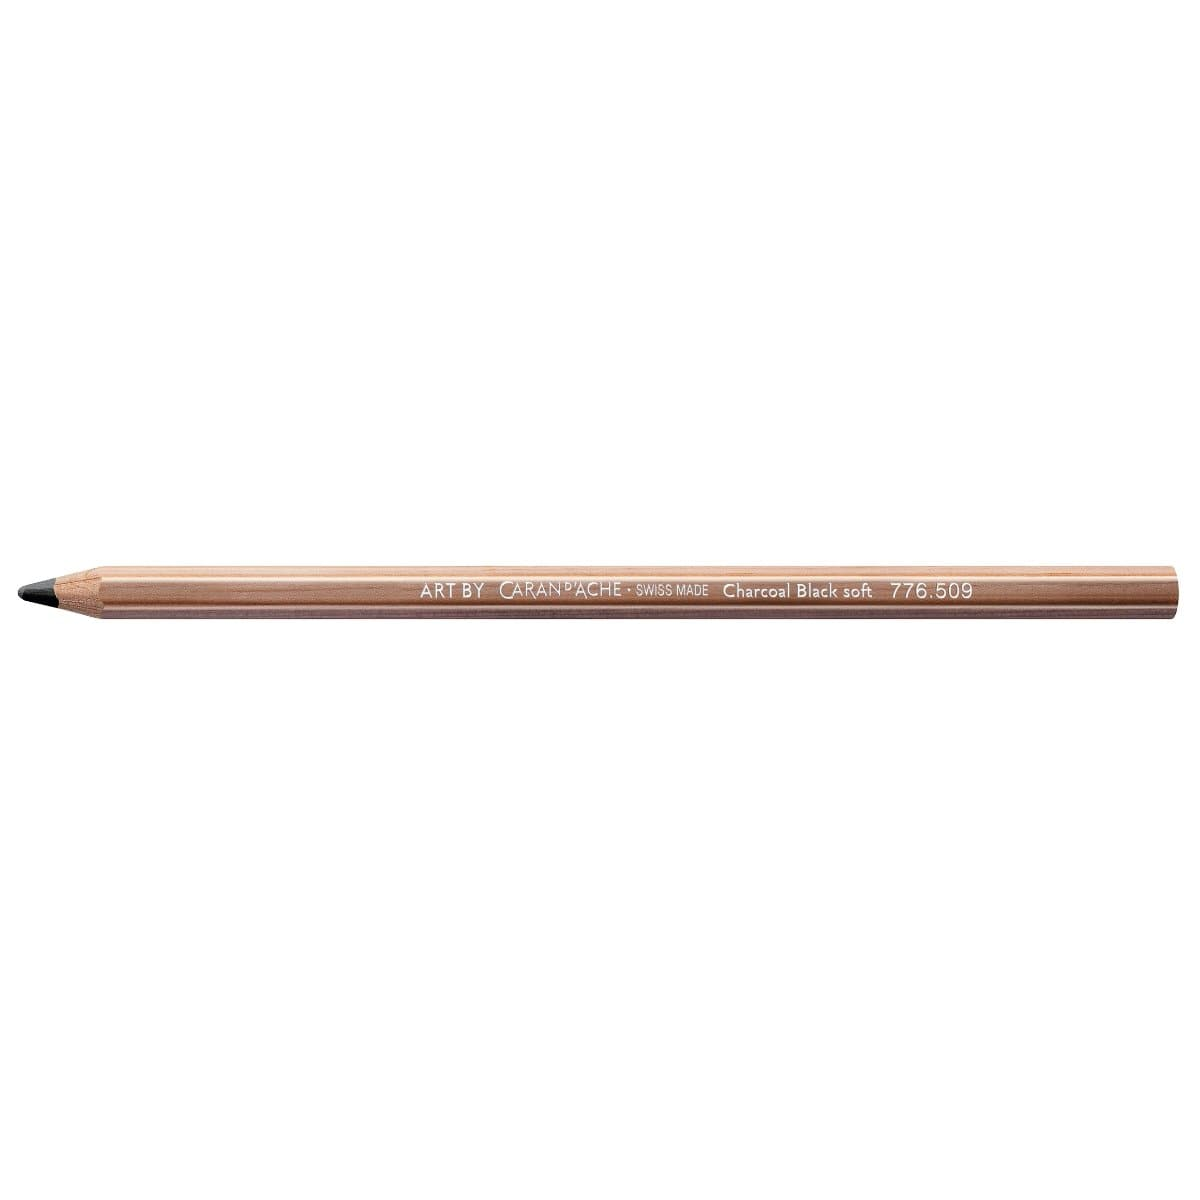 CARAN d'ACHE Artist Art Charcoal Pencil, soft, Black